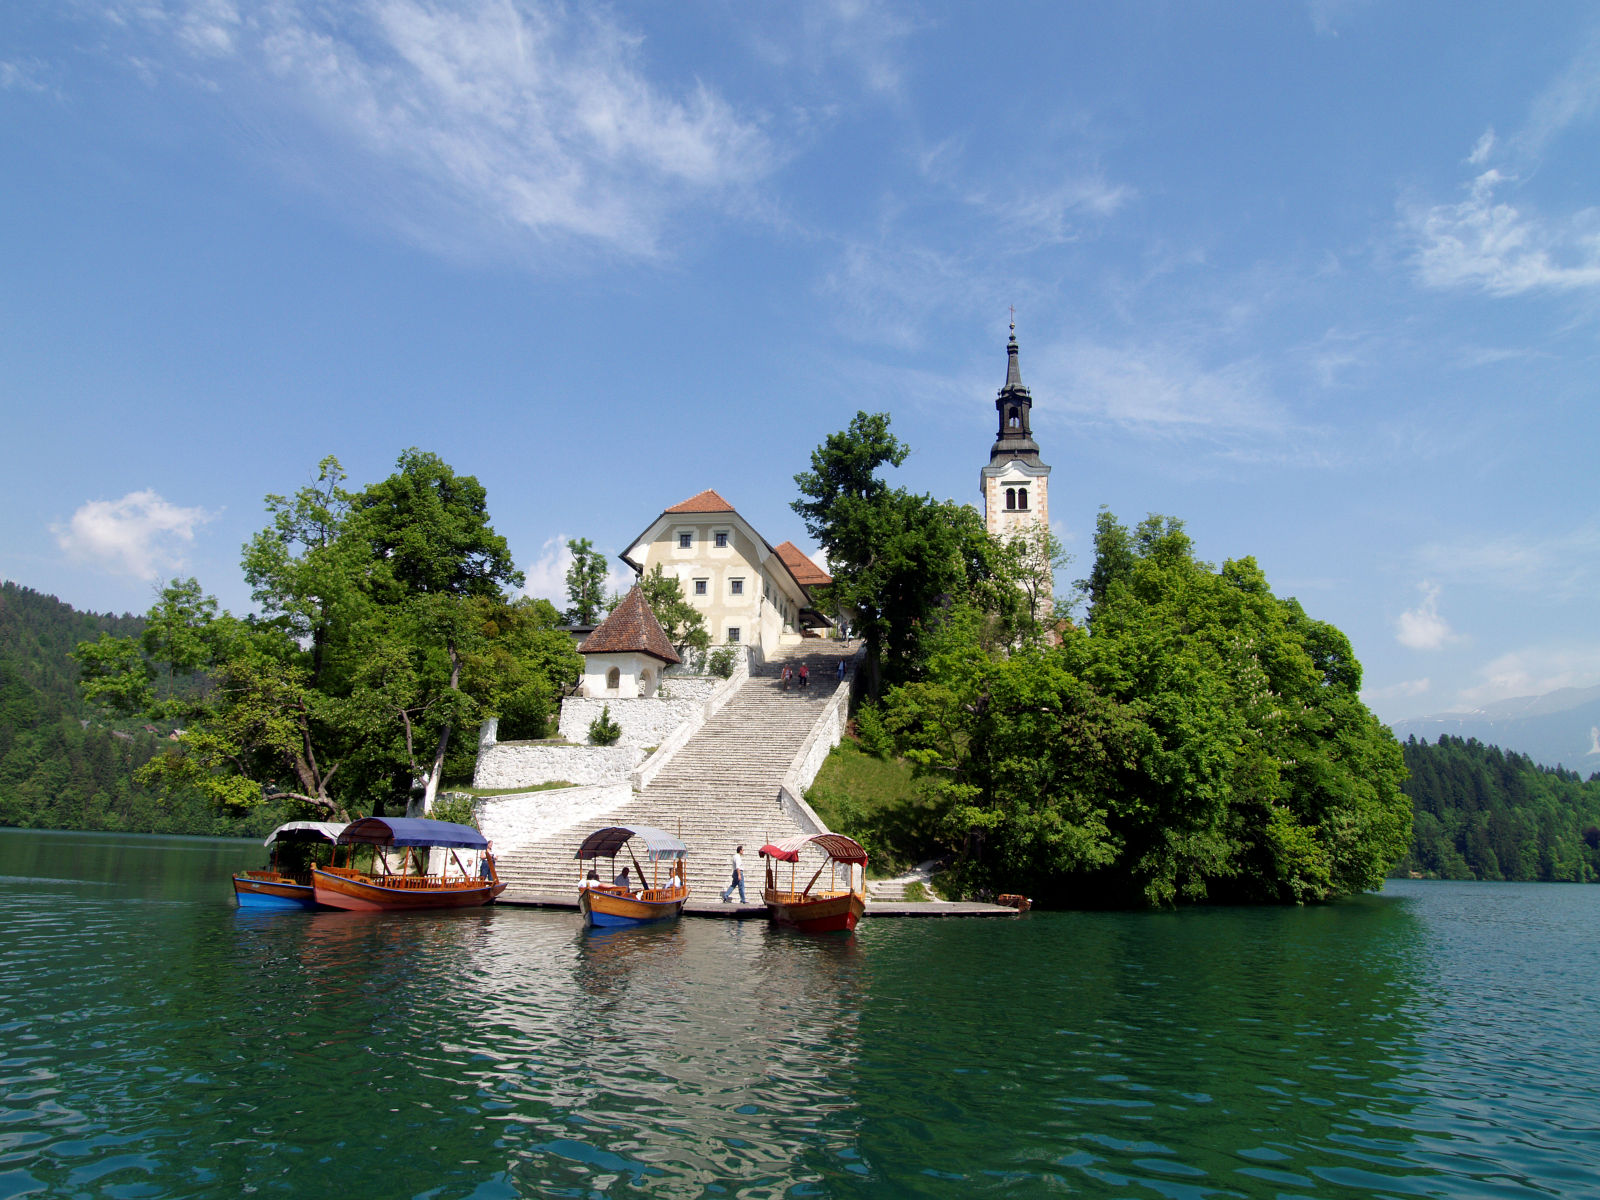 Bled island with 99 stairs in the middle of Lake Bled in Slovenia